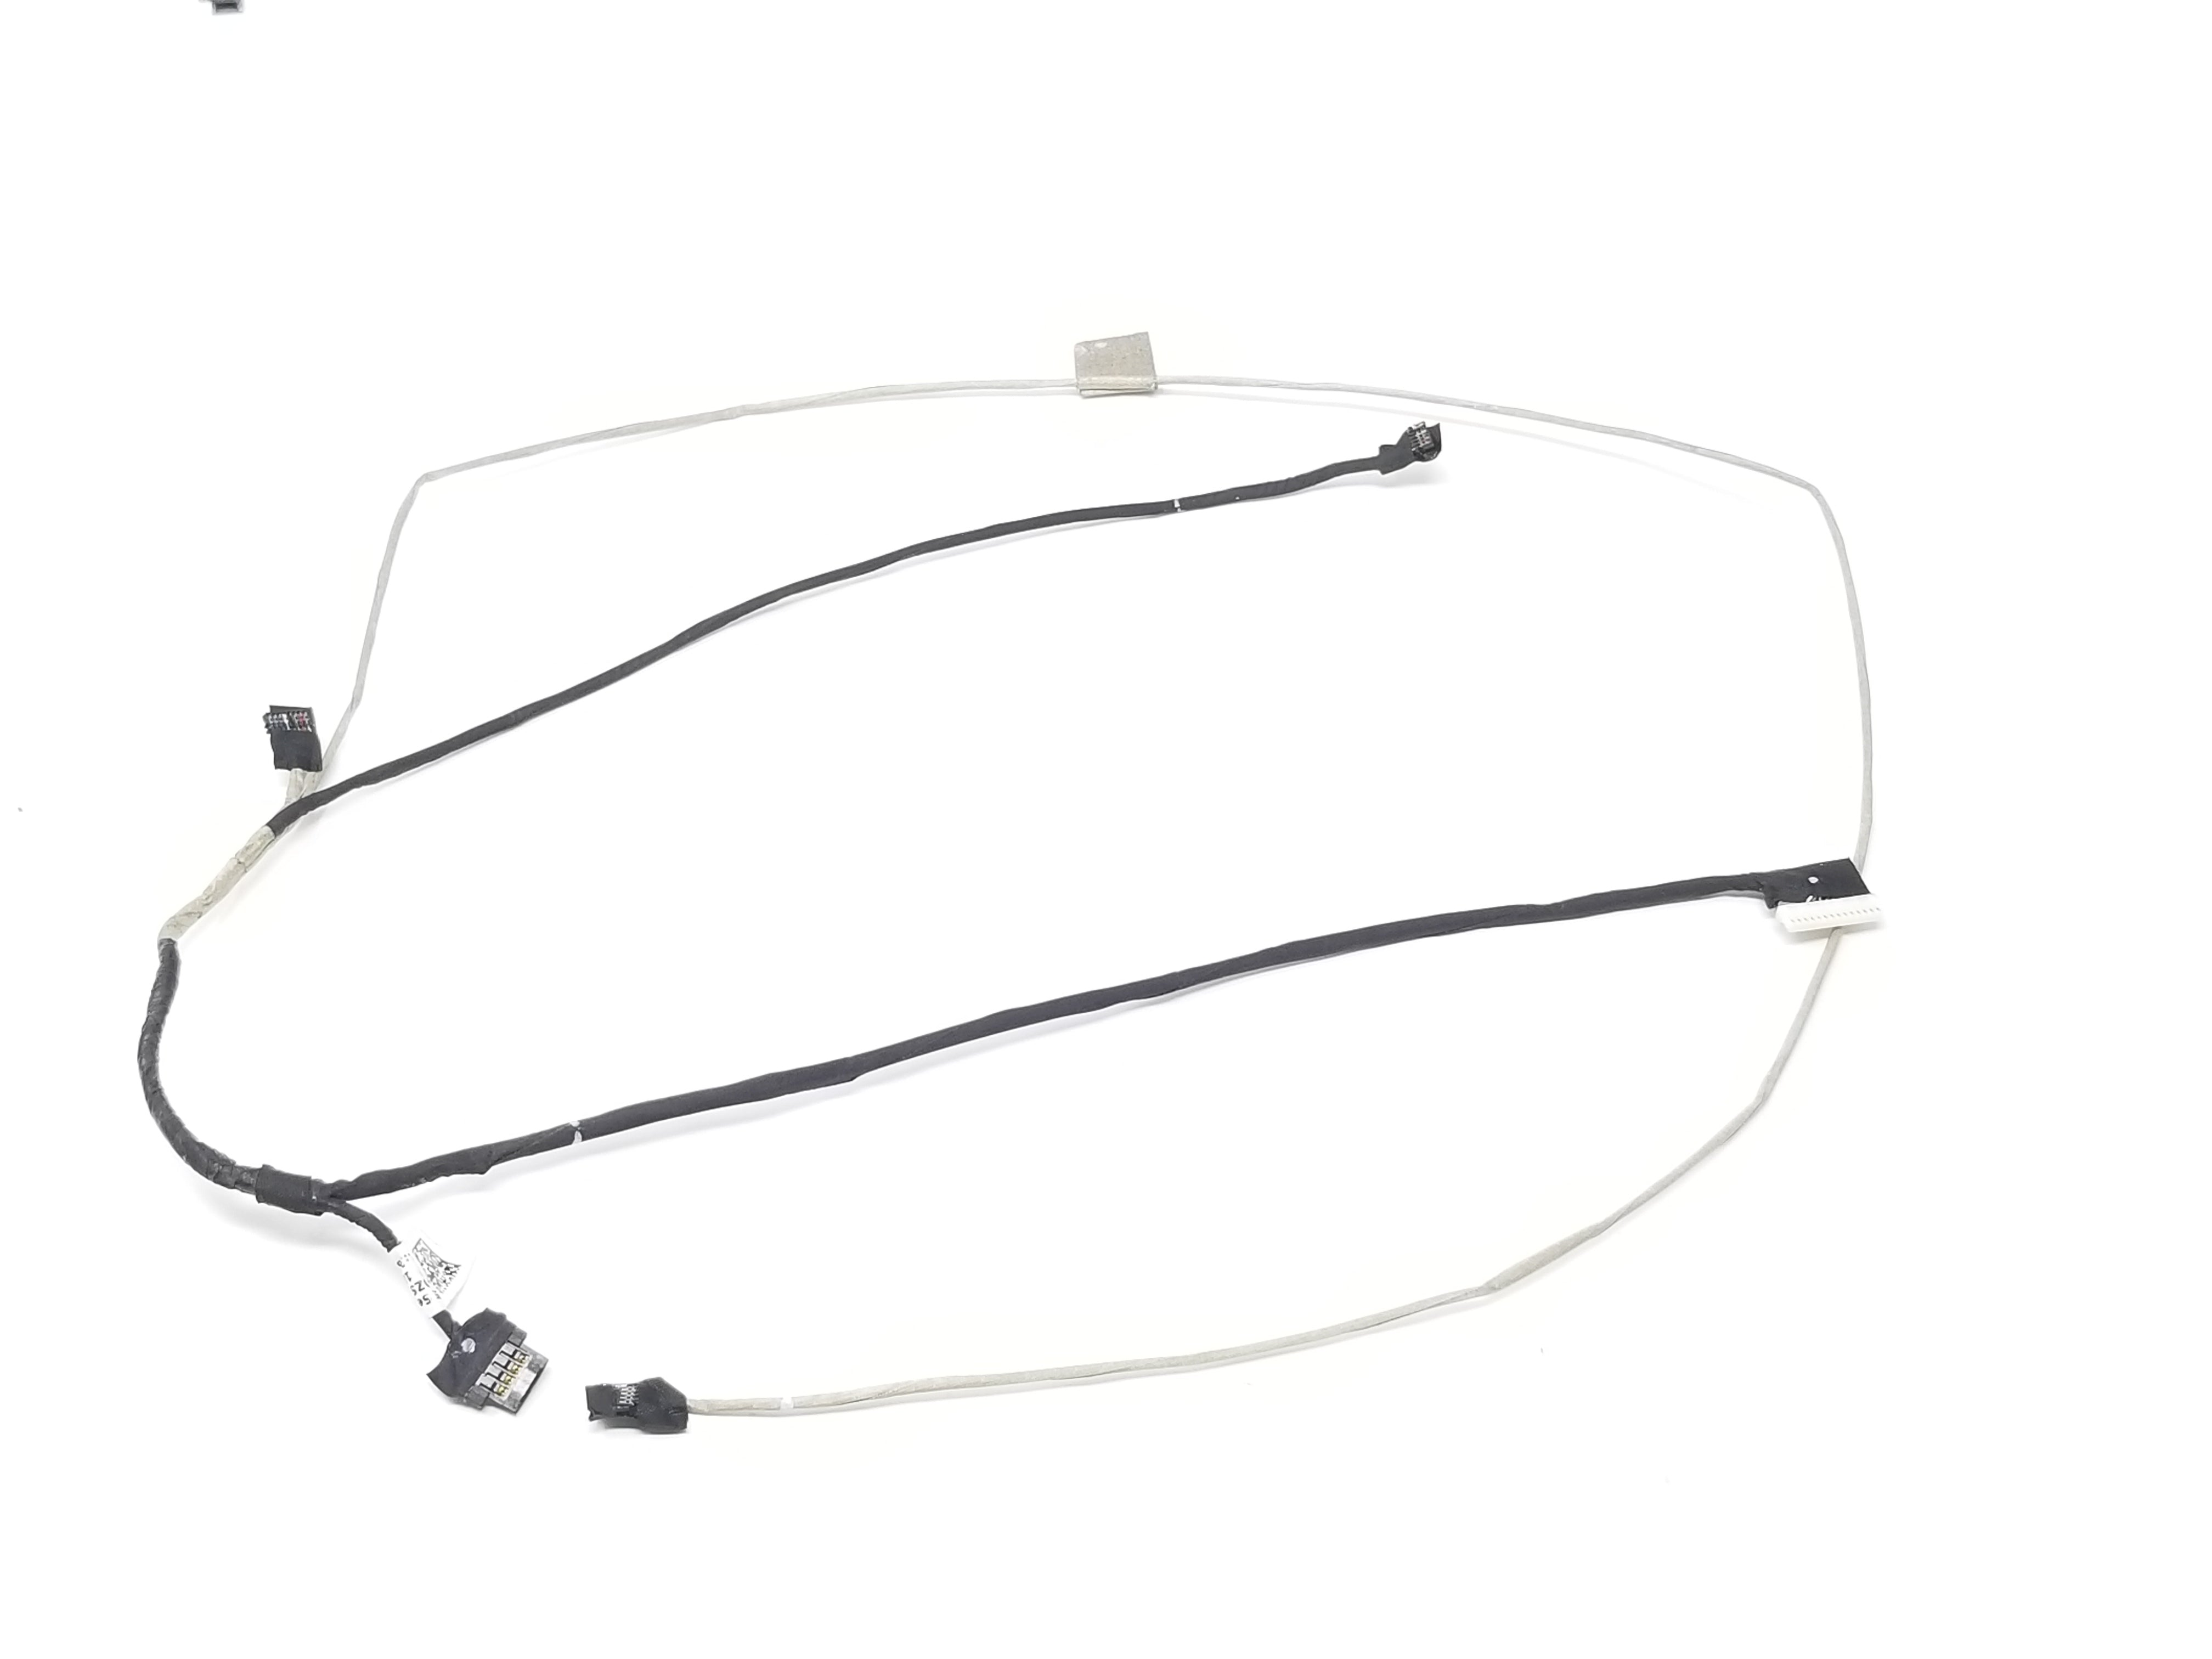 Acer Chromebook 13 CB5-312T Touch sensor and Microphone Cable - DD0ZSETH002